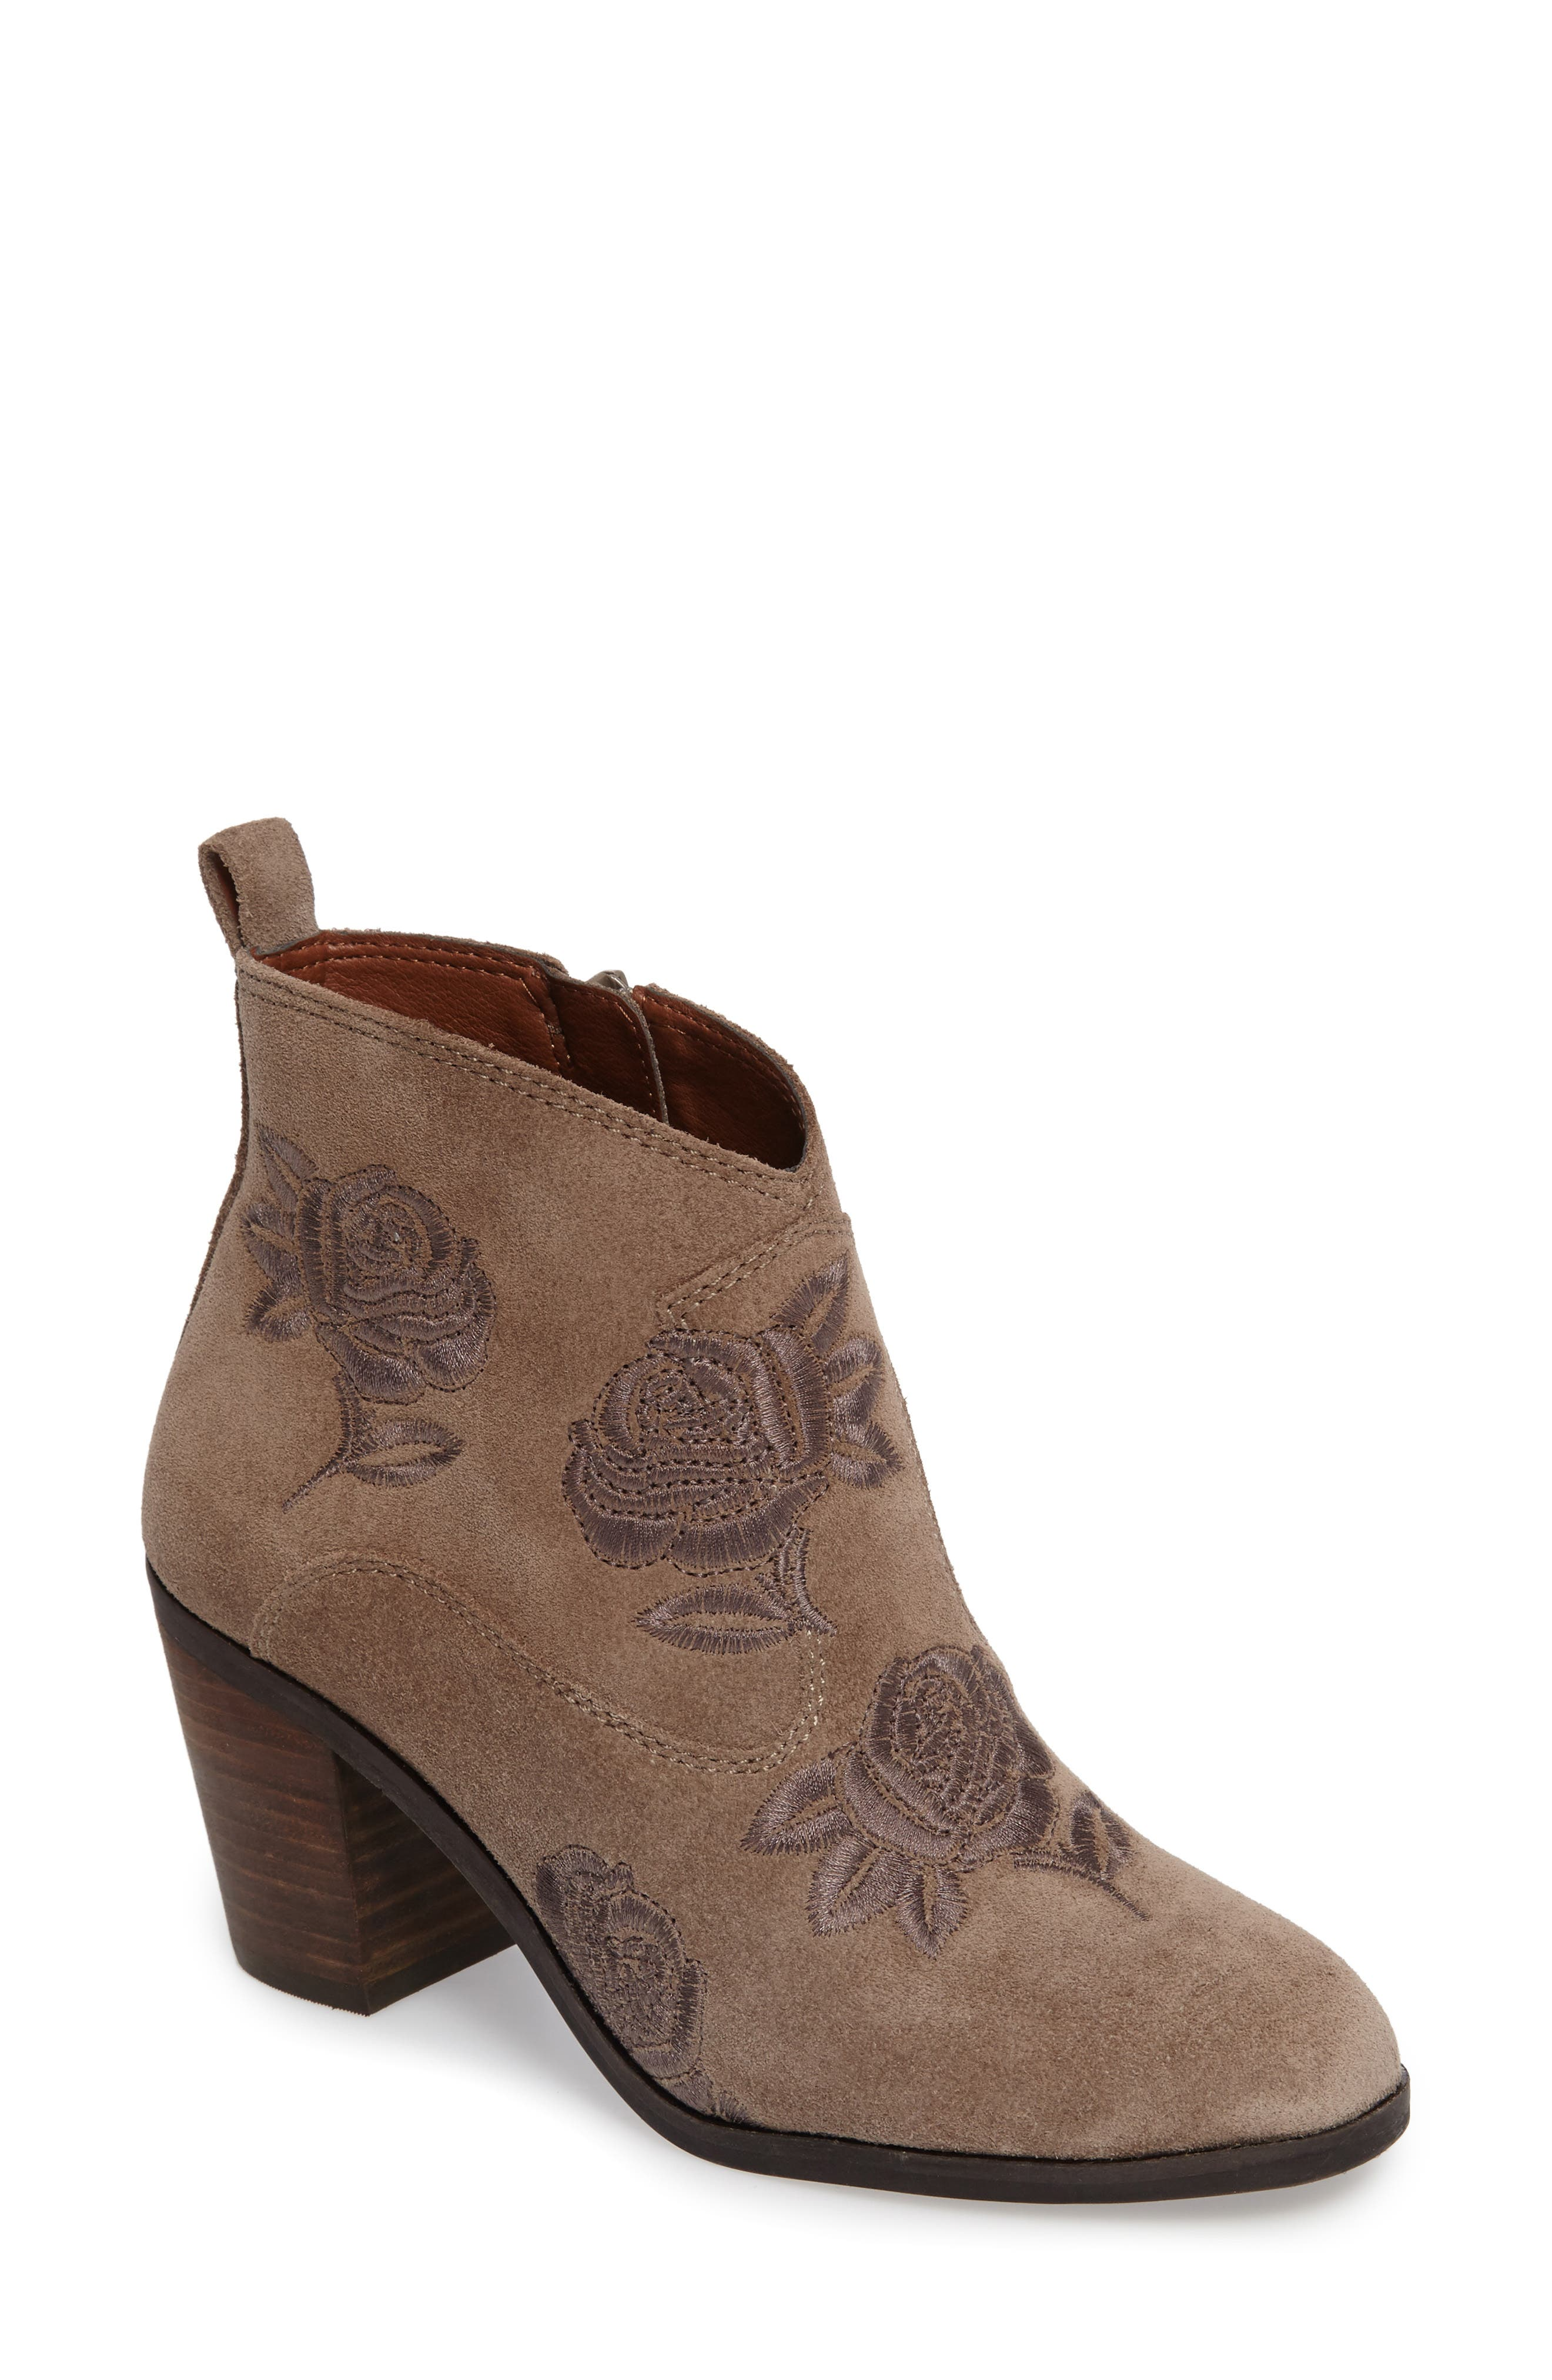 Main Image - Lucky Brand Pexton Embroidered Bootie (Women)